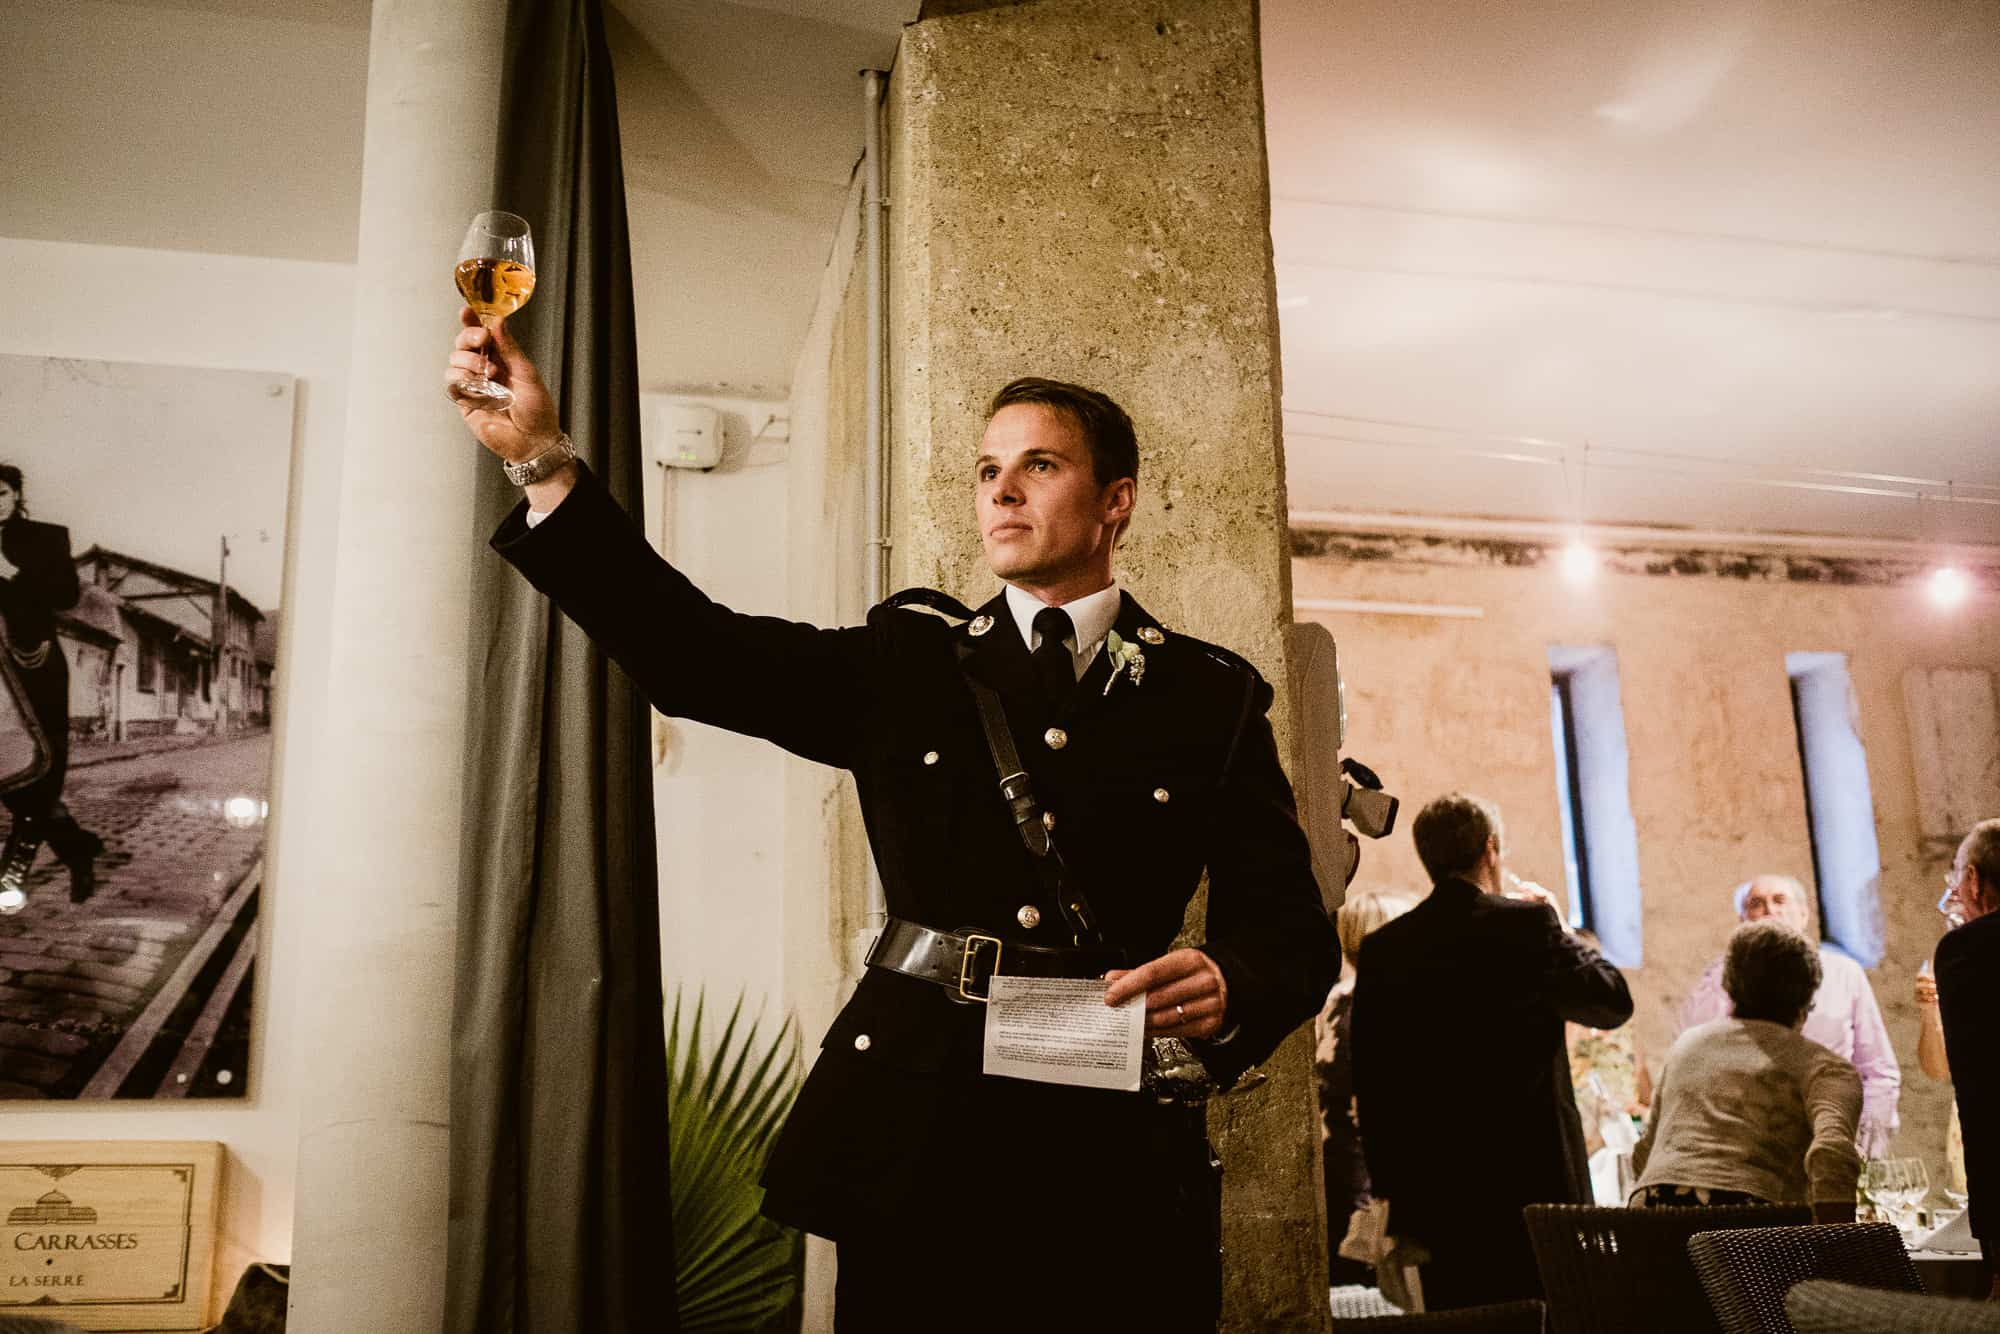 chateau-carrasses-france-wedding-photography-0073